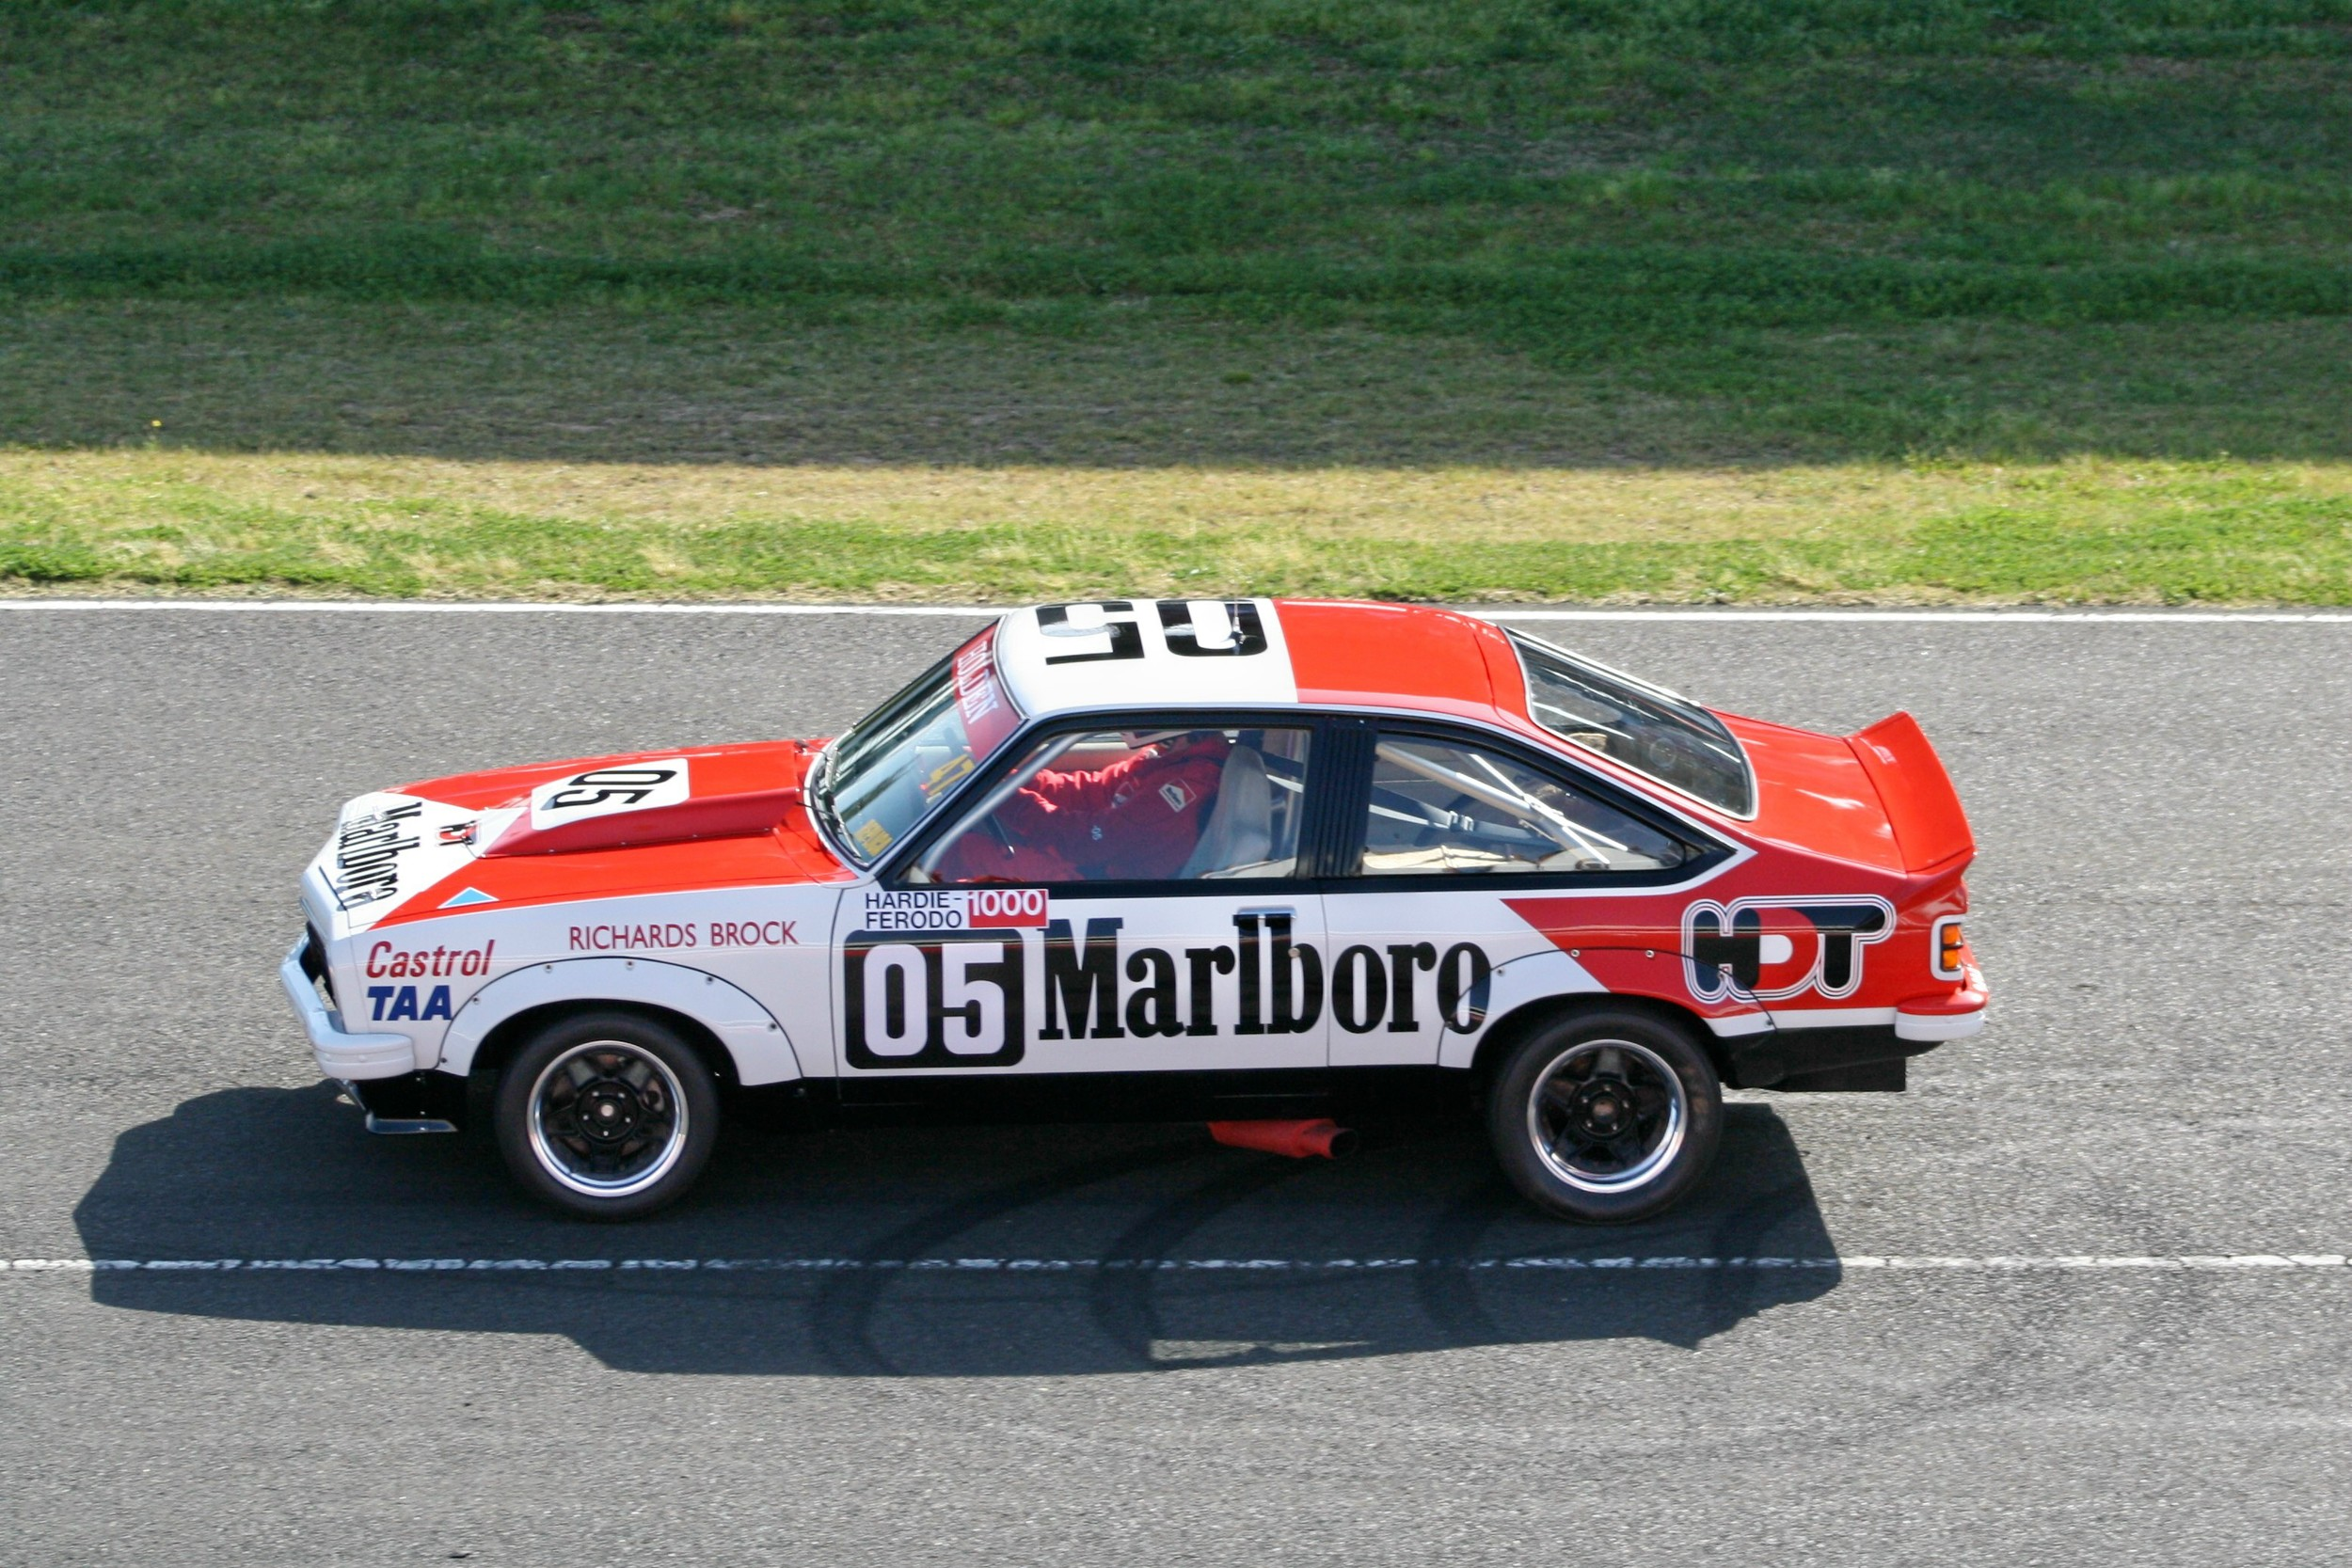 Queensland Motorsport Museum owner Ian Bone hopes to race a replica A9X Holden Torana in the Cootha Classic - Brisbane's Festival of Motorsport in September.